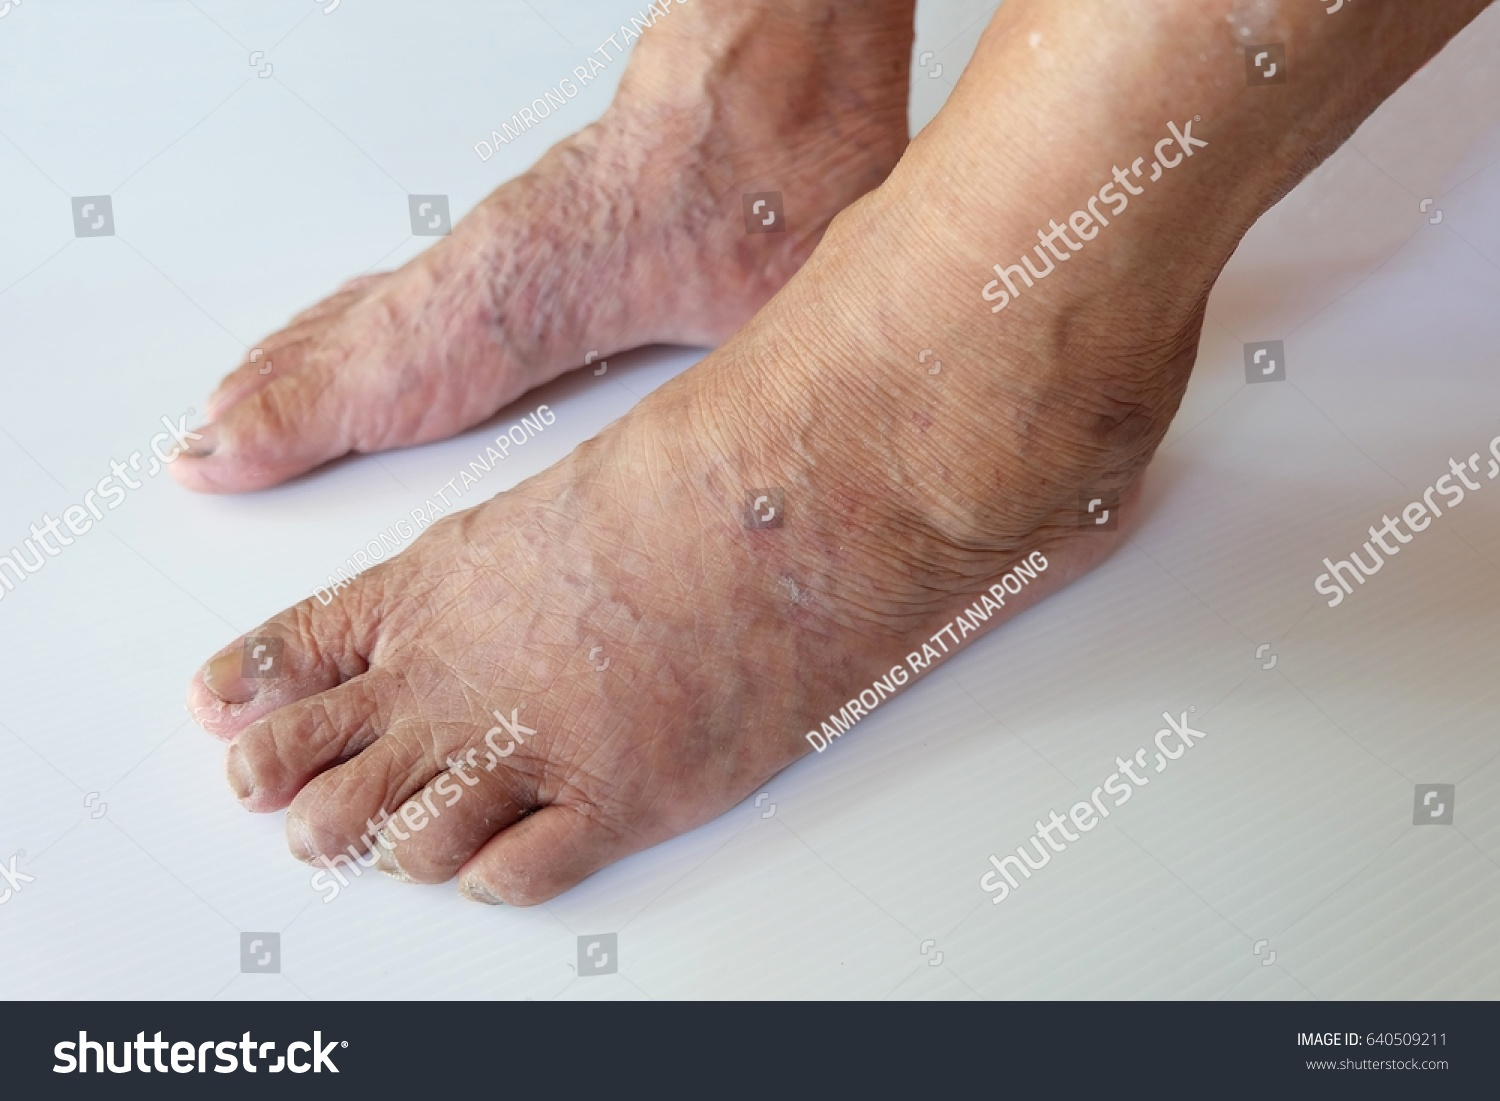 Close Varicose Veins Legs Foot Old Stock Photo Edit Now 640509211